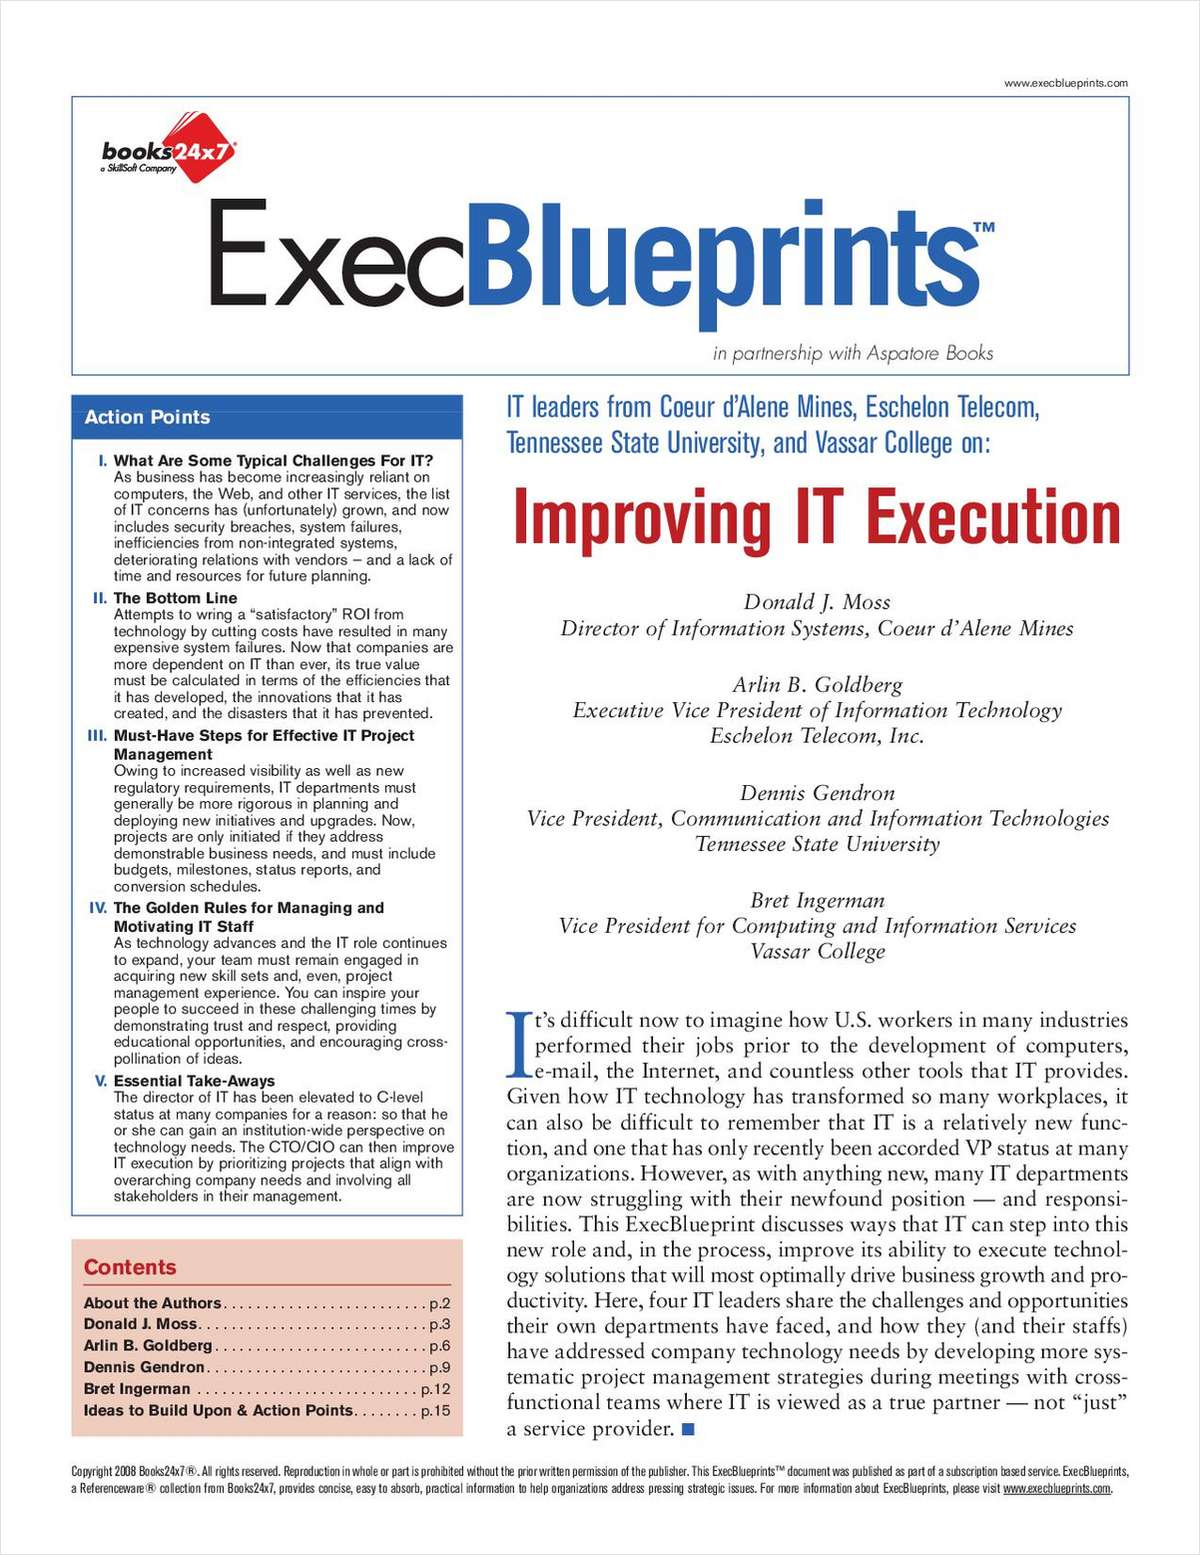 Improving IT Execution